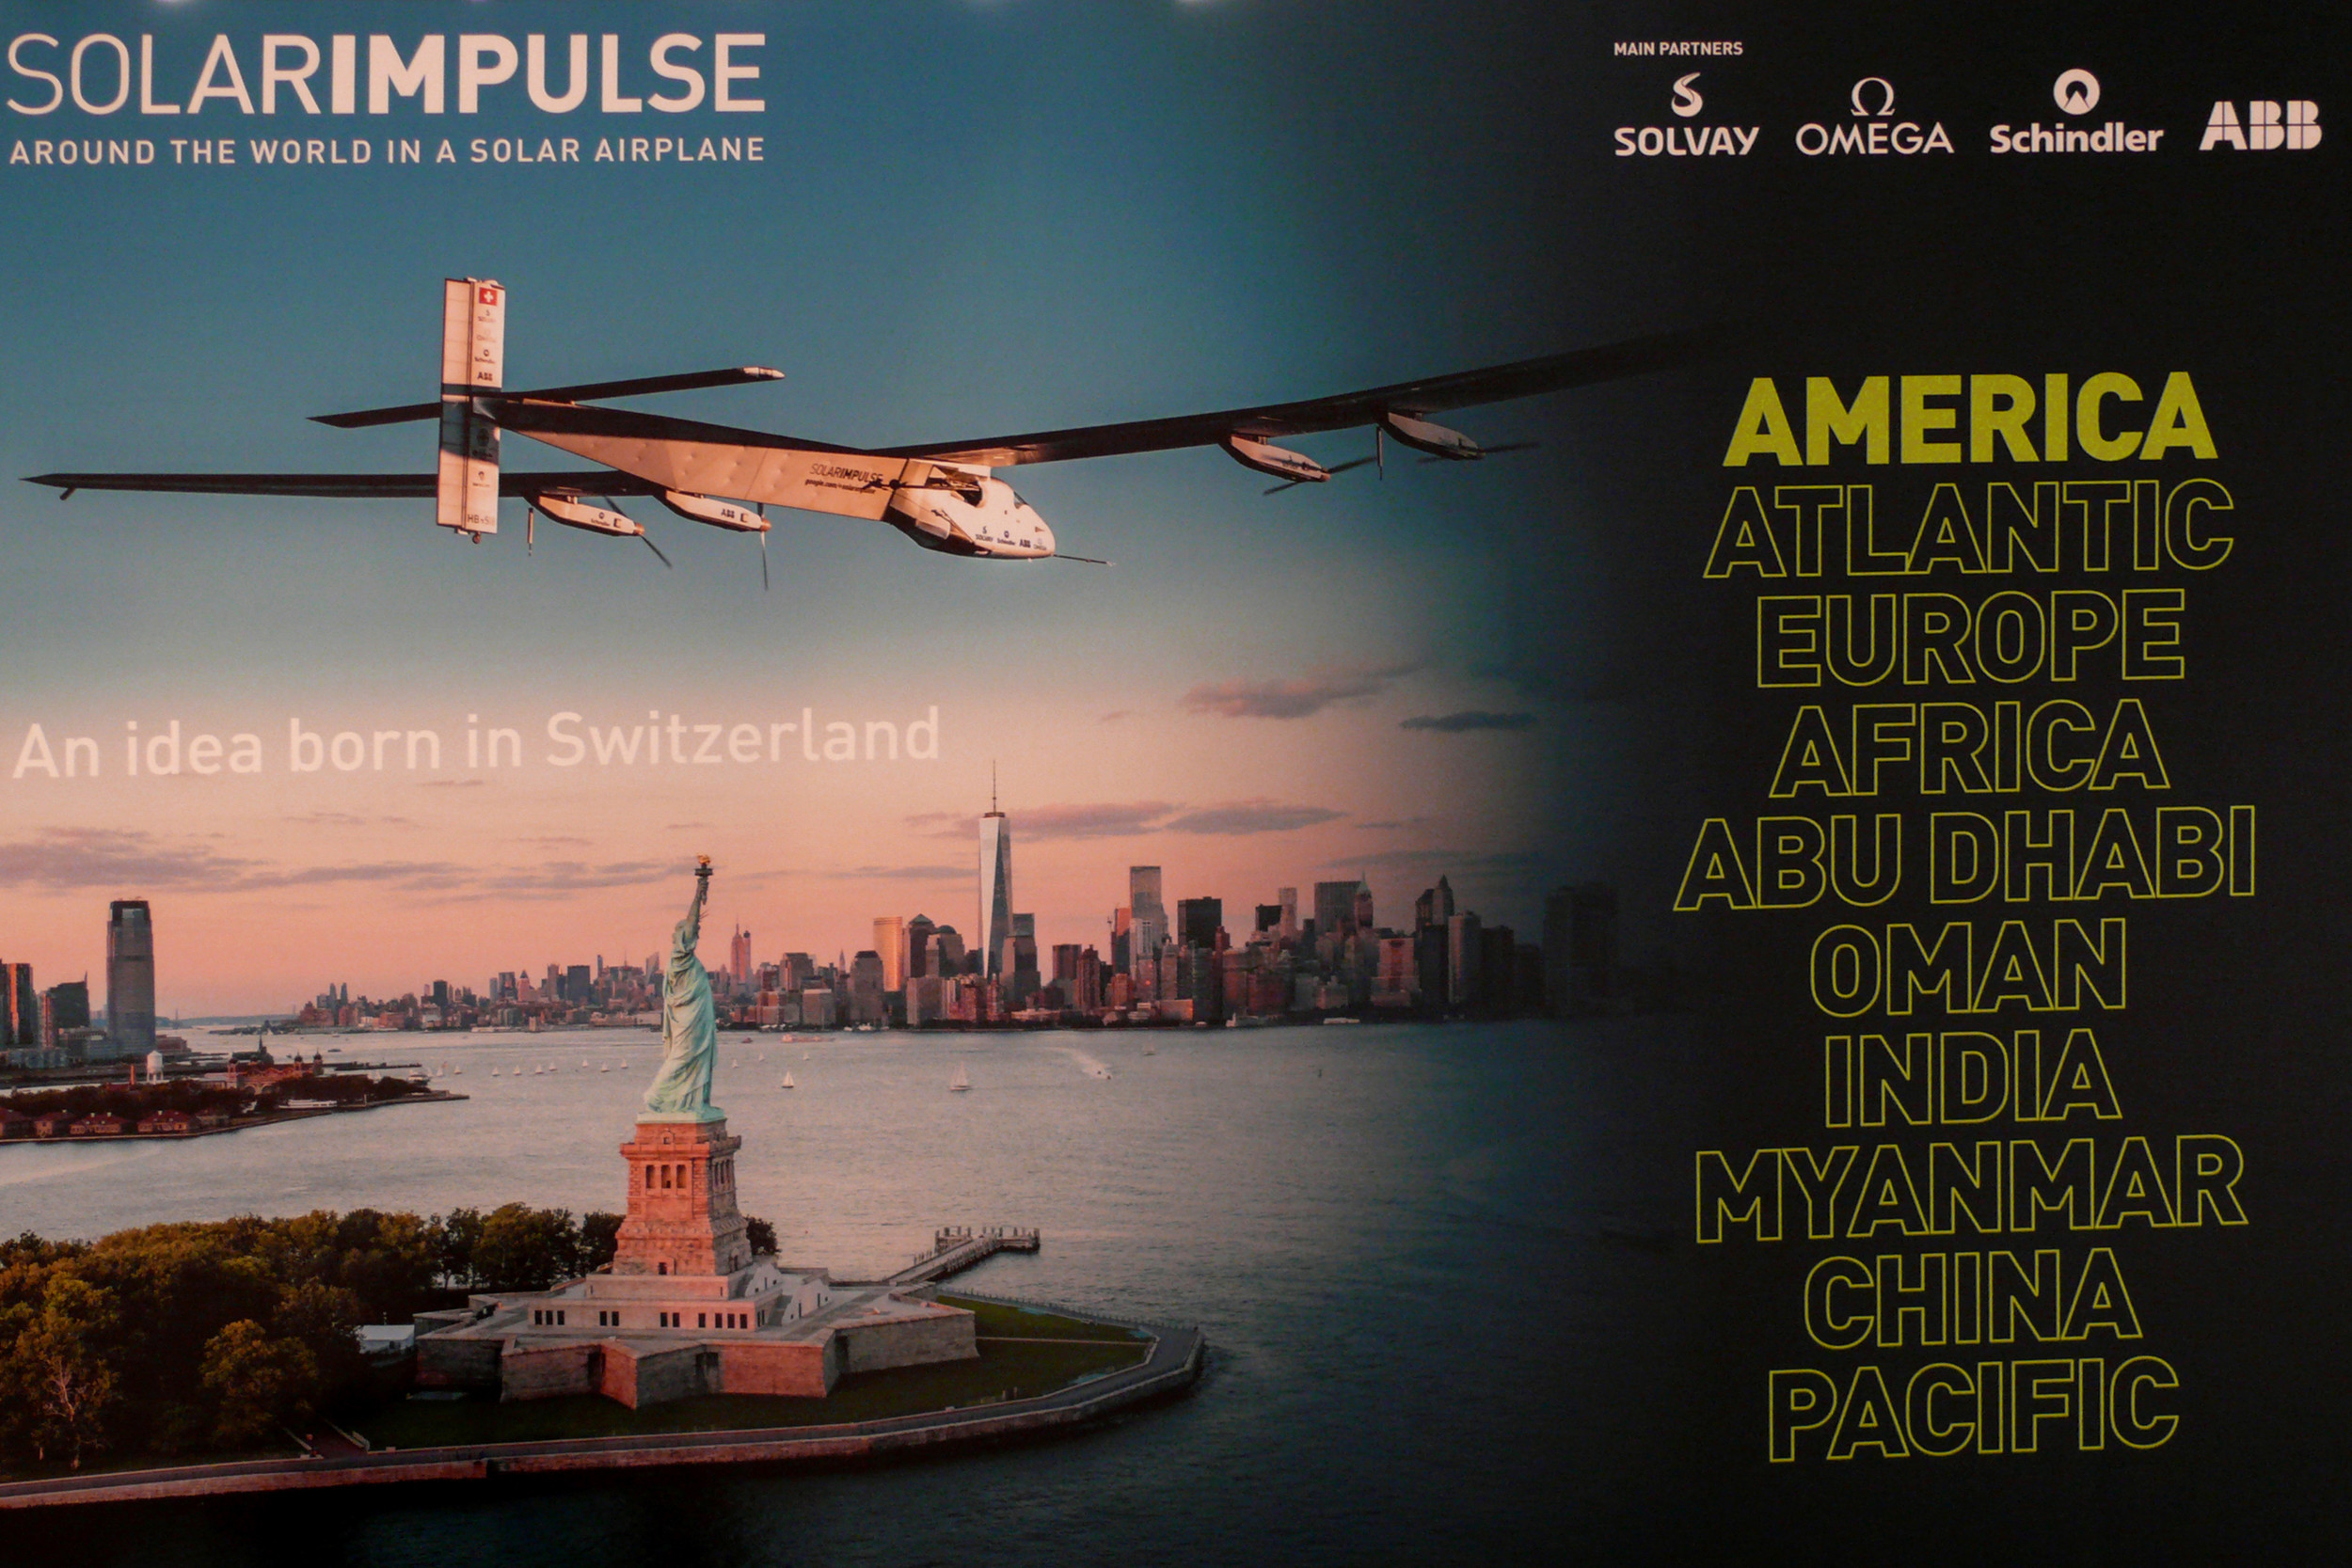 Here the banner at the presentation shows the historic fly over the Statue of LIberty. The flight plan is a way to say thank you to the United States for its own support of aviation development.